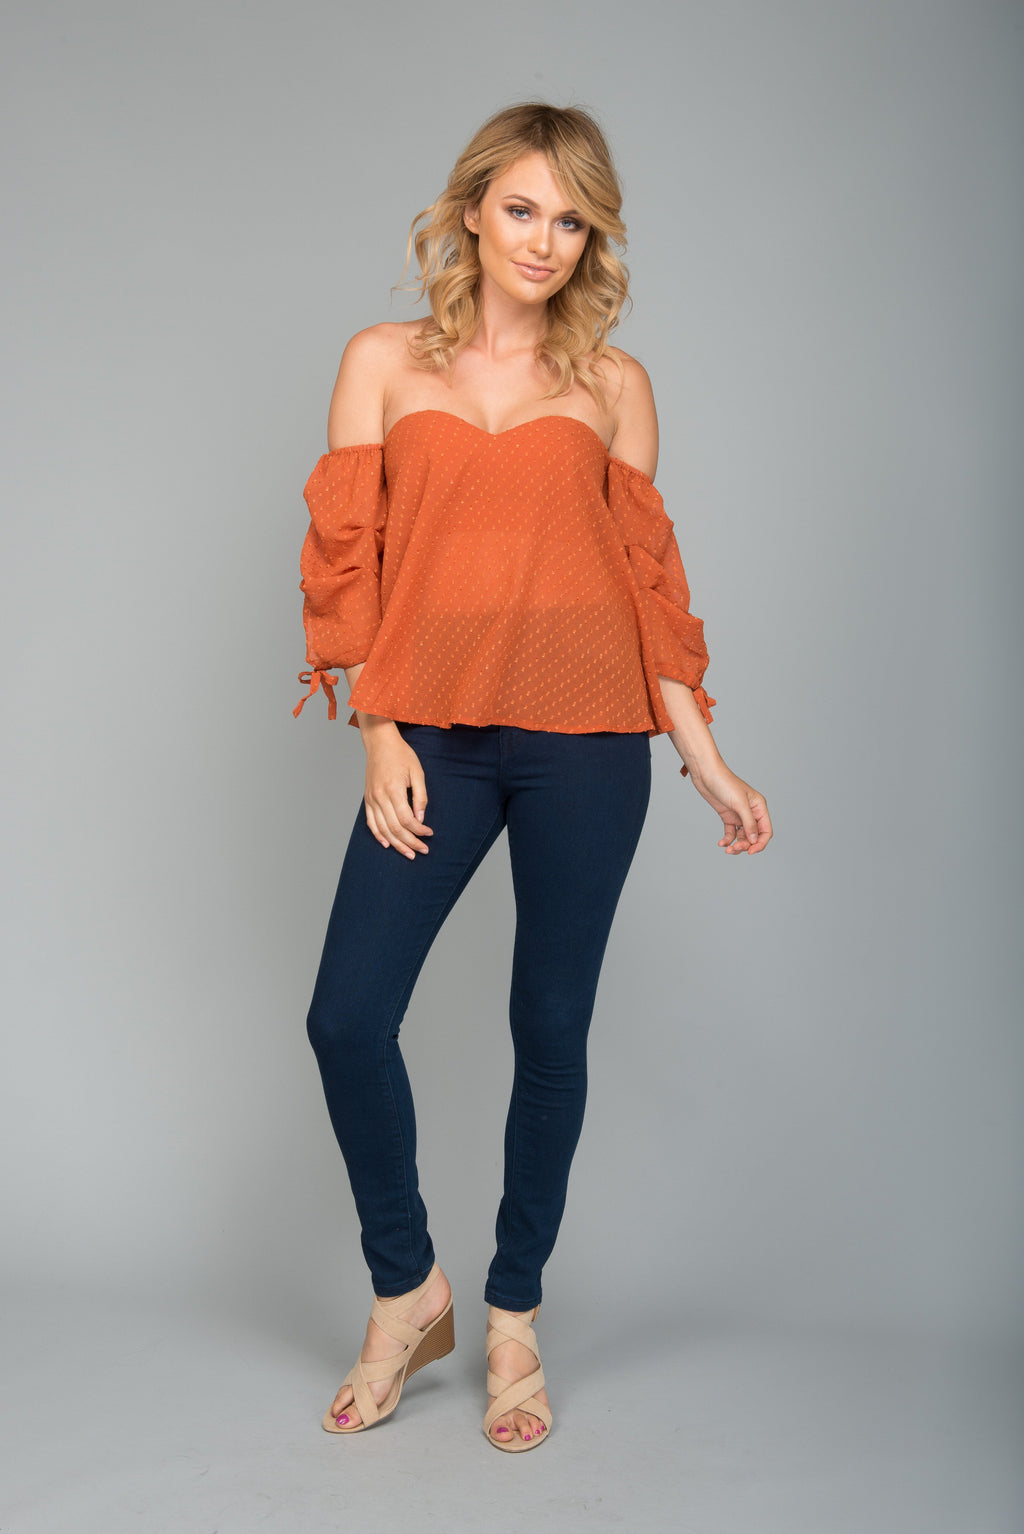 strapless off the shoulder textured polka dot top - rust